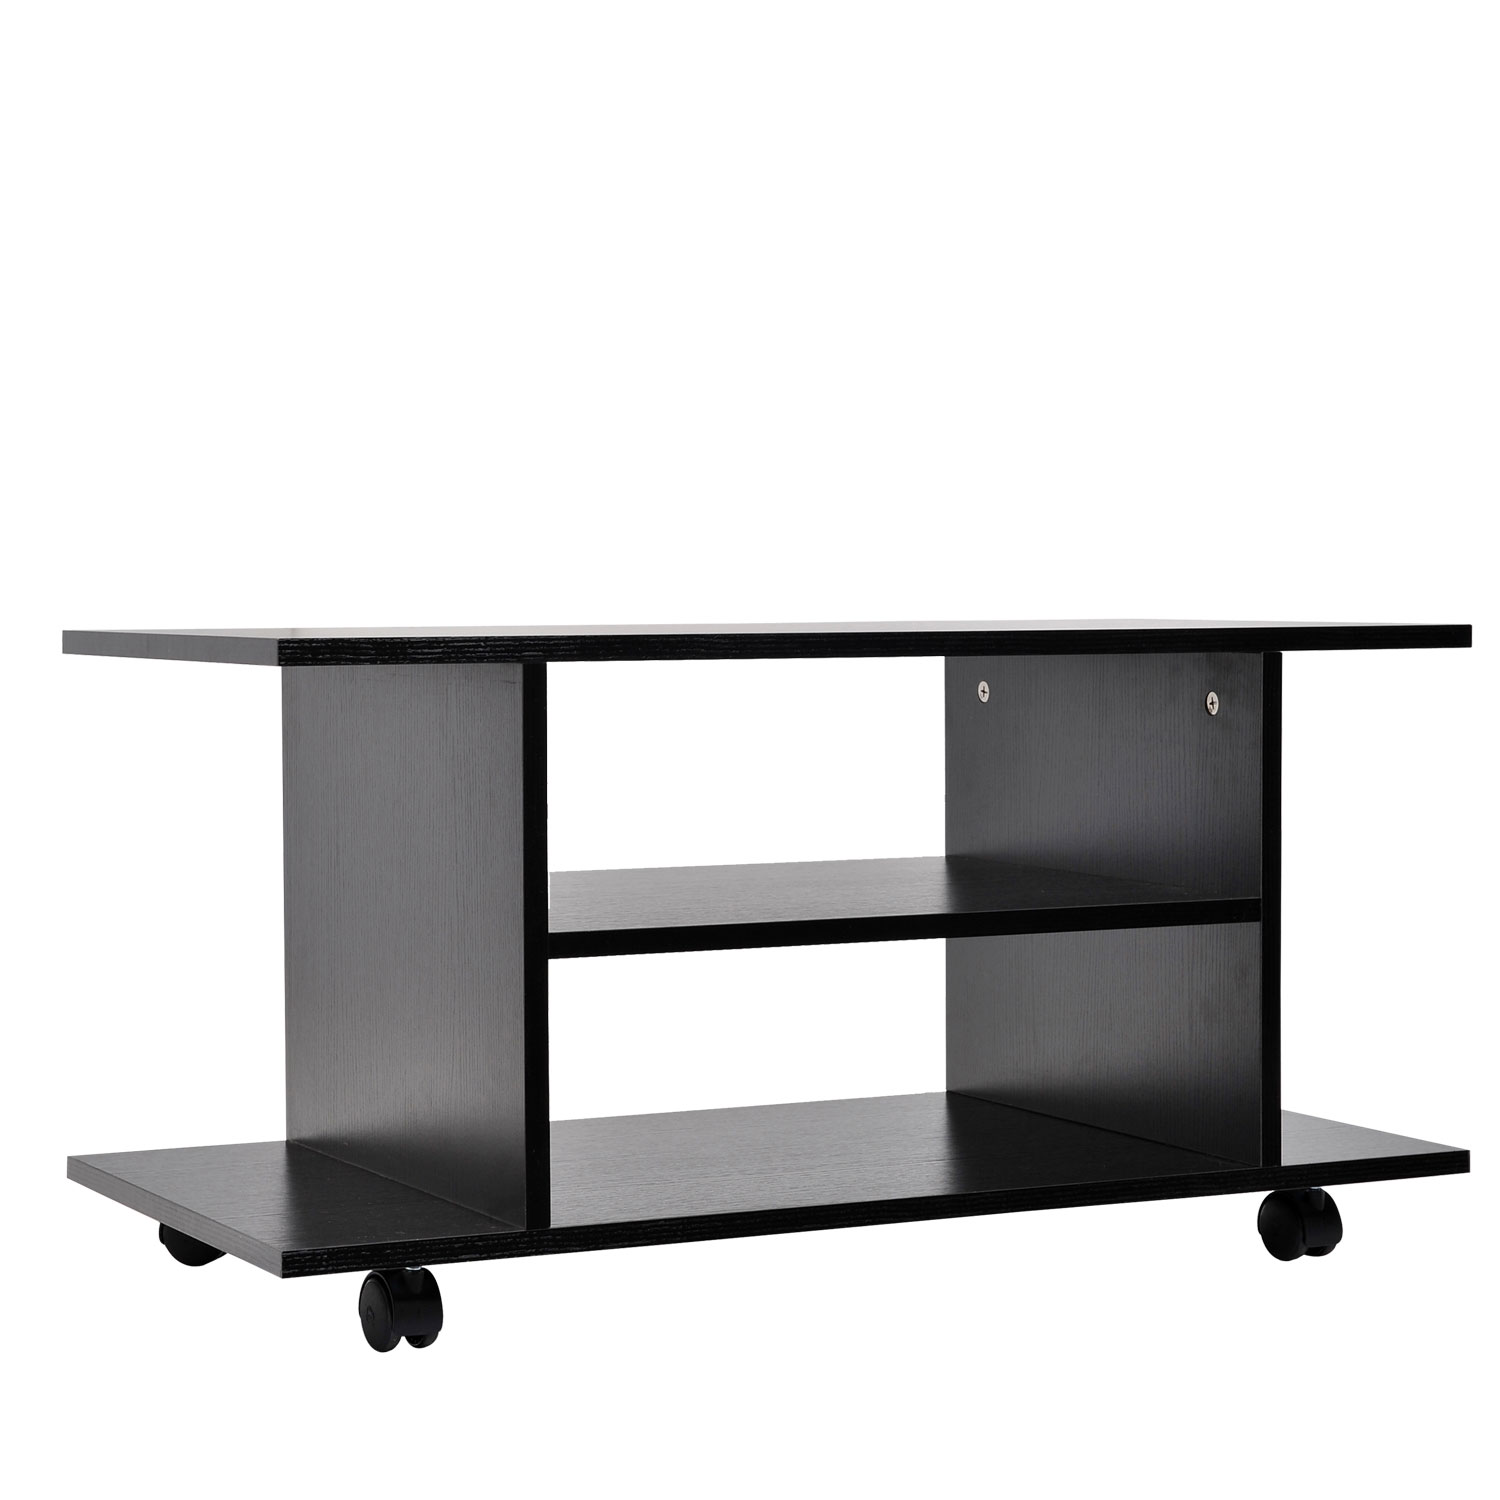 Tv Stand With Wheels Modern Tv Cabinet Stand 3 Tier Shelf Storage Shelves Table